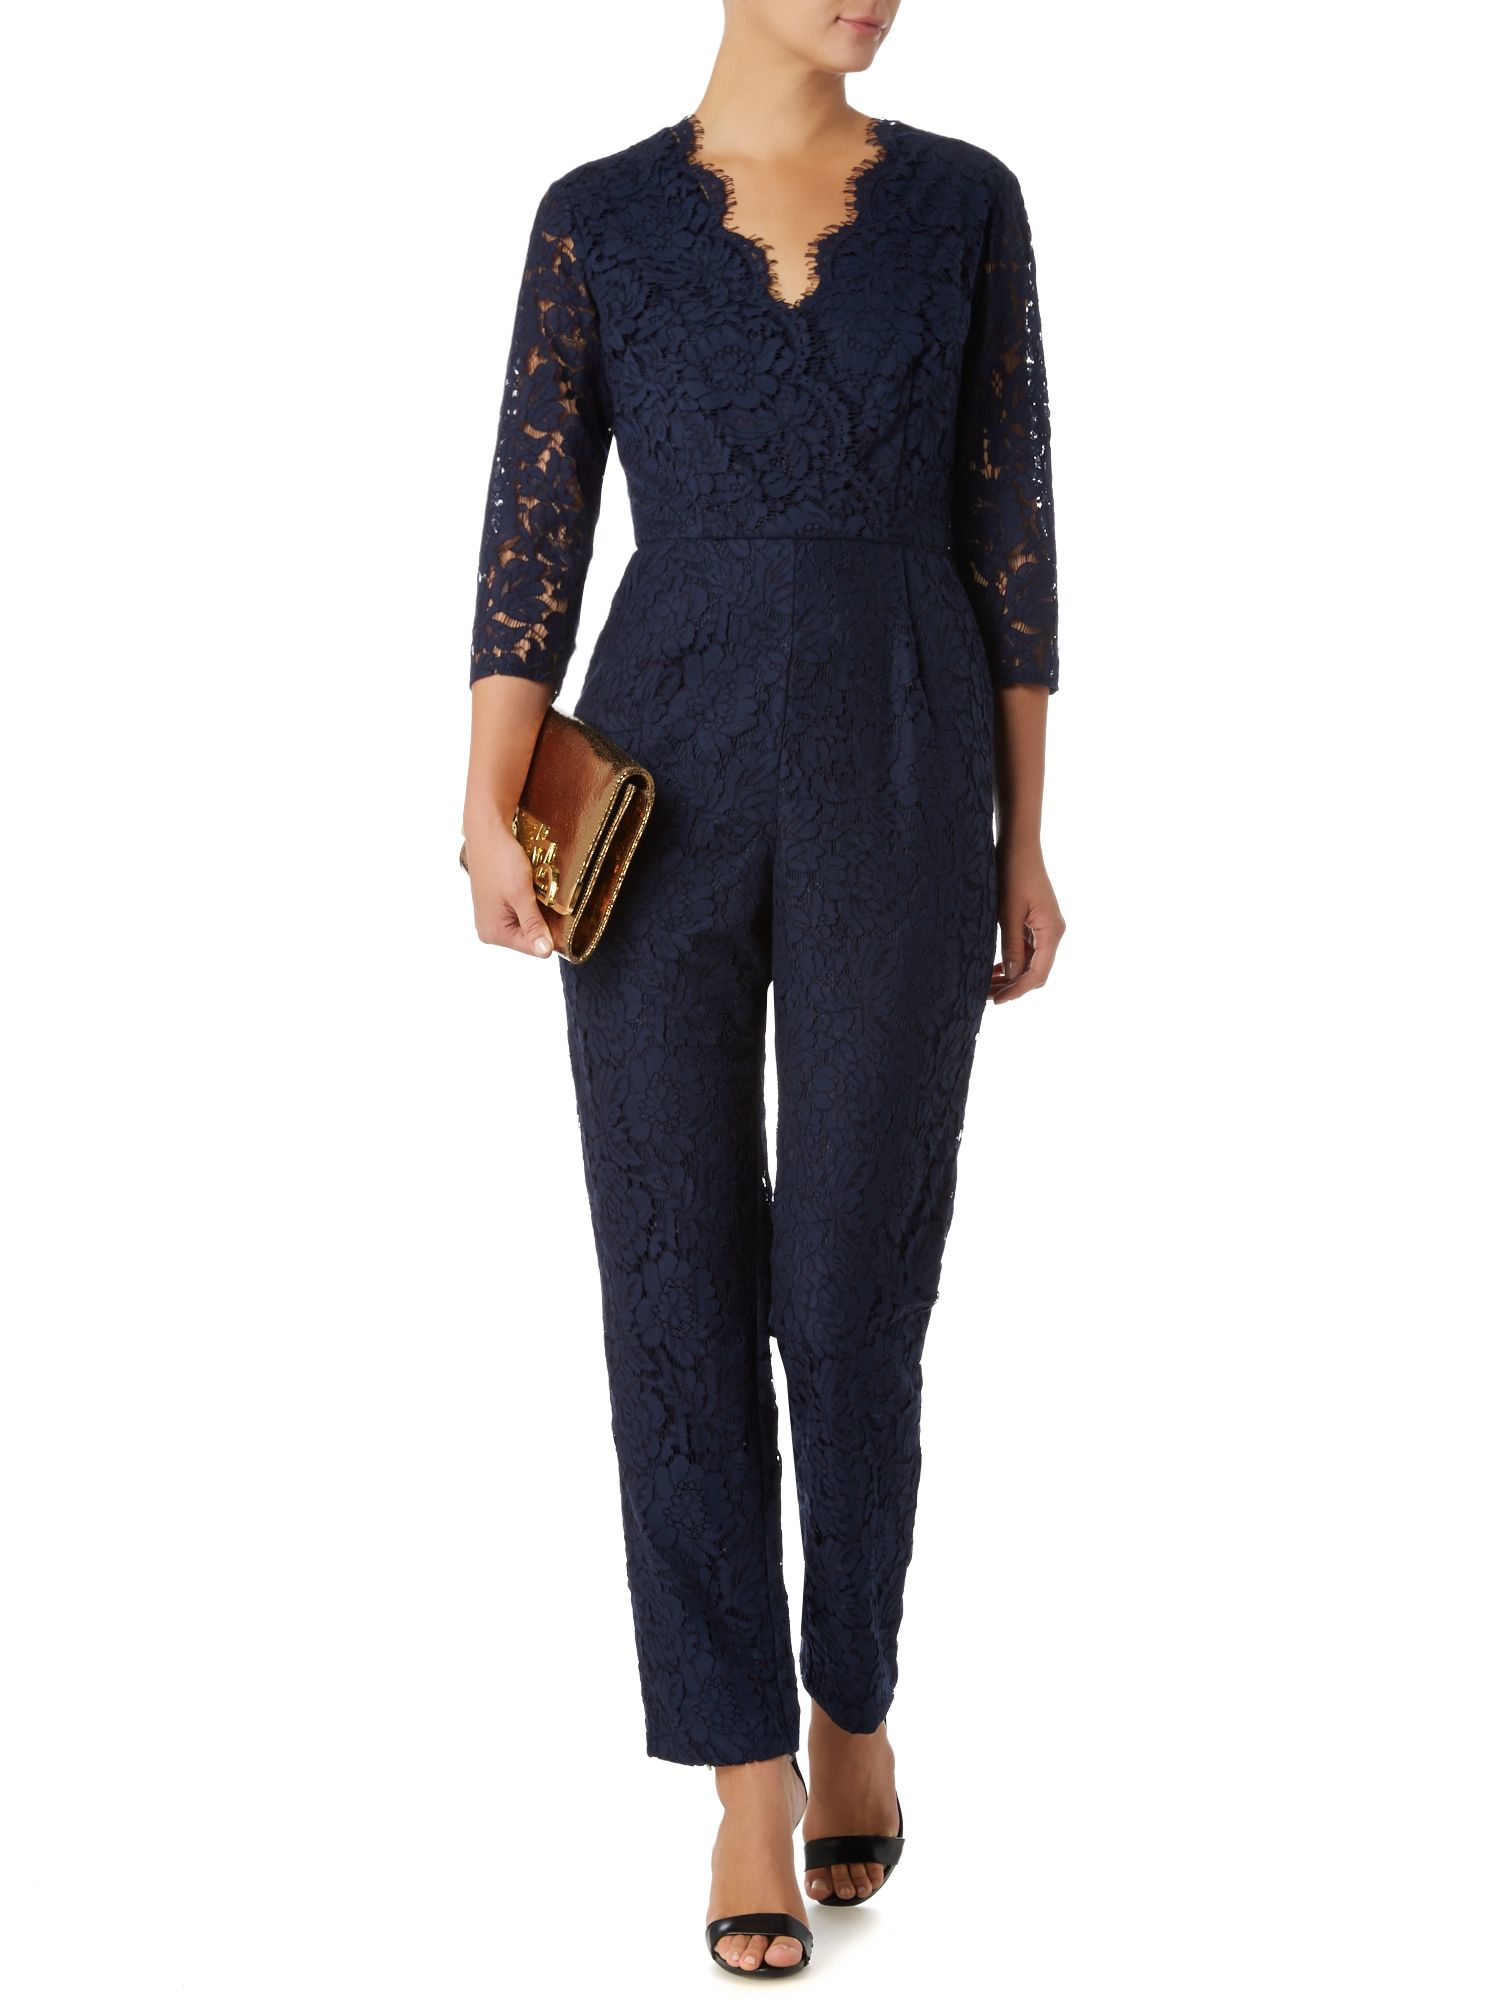 Scalloped Neckline Lace Panel Navy Jumpsuit on sale only US$ now, buy cheap Scalloped Neckline Lace Panel Navy Jumpsuit at bestsupsm5.cf